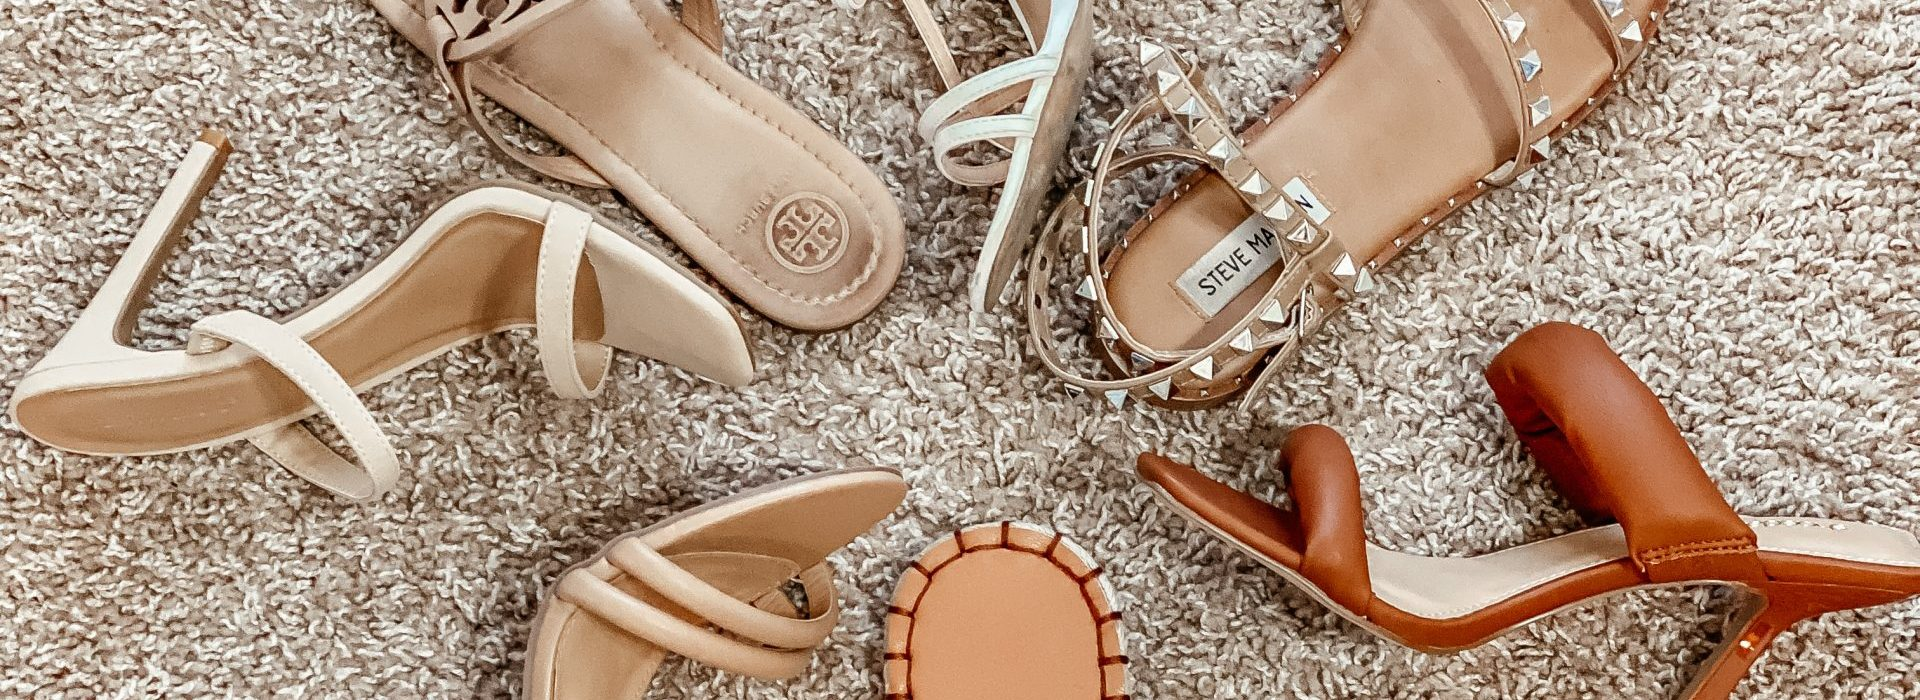 Roundup of the Best Spring/Summer Sandals